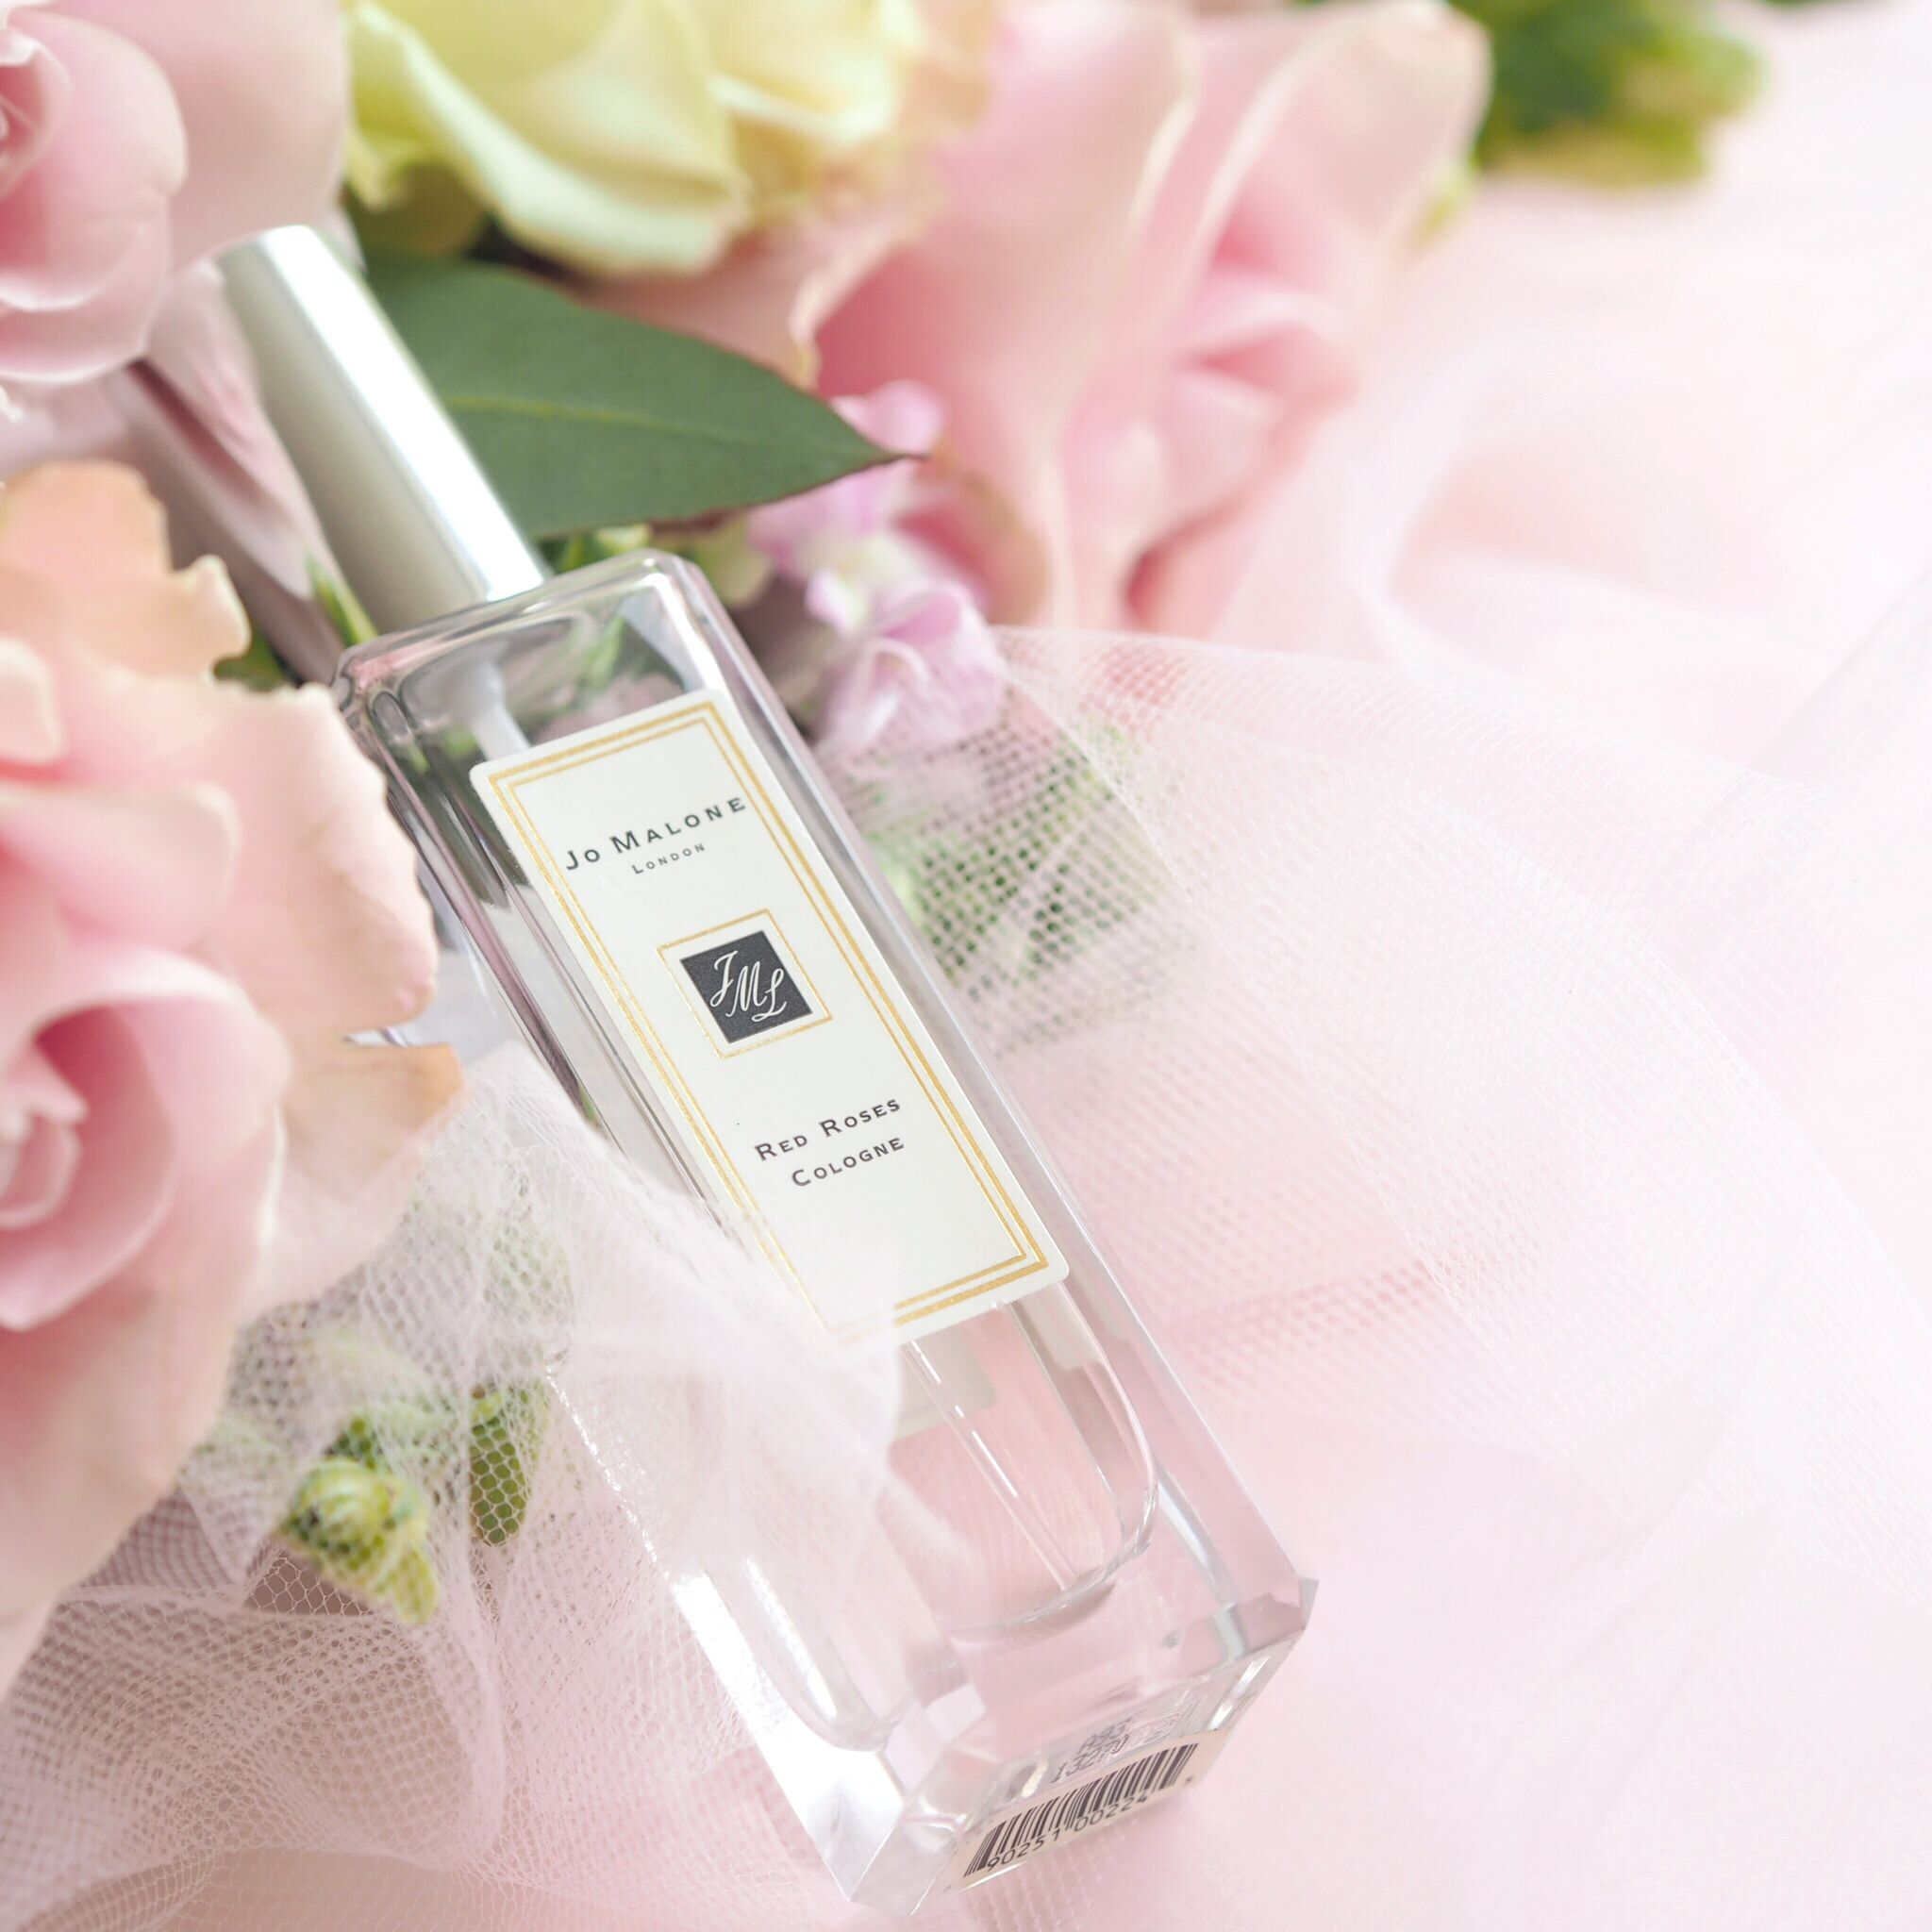 Special Gift Ideas For Mother's Day, Gift Guide, Jo Malone Red Roses Perfume | Love Catherine